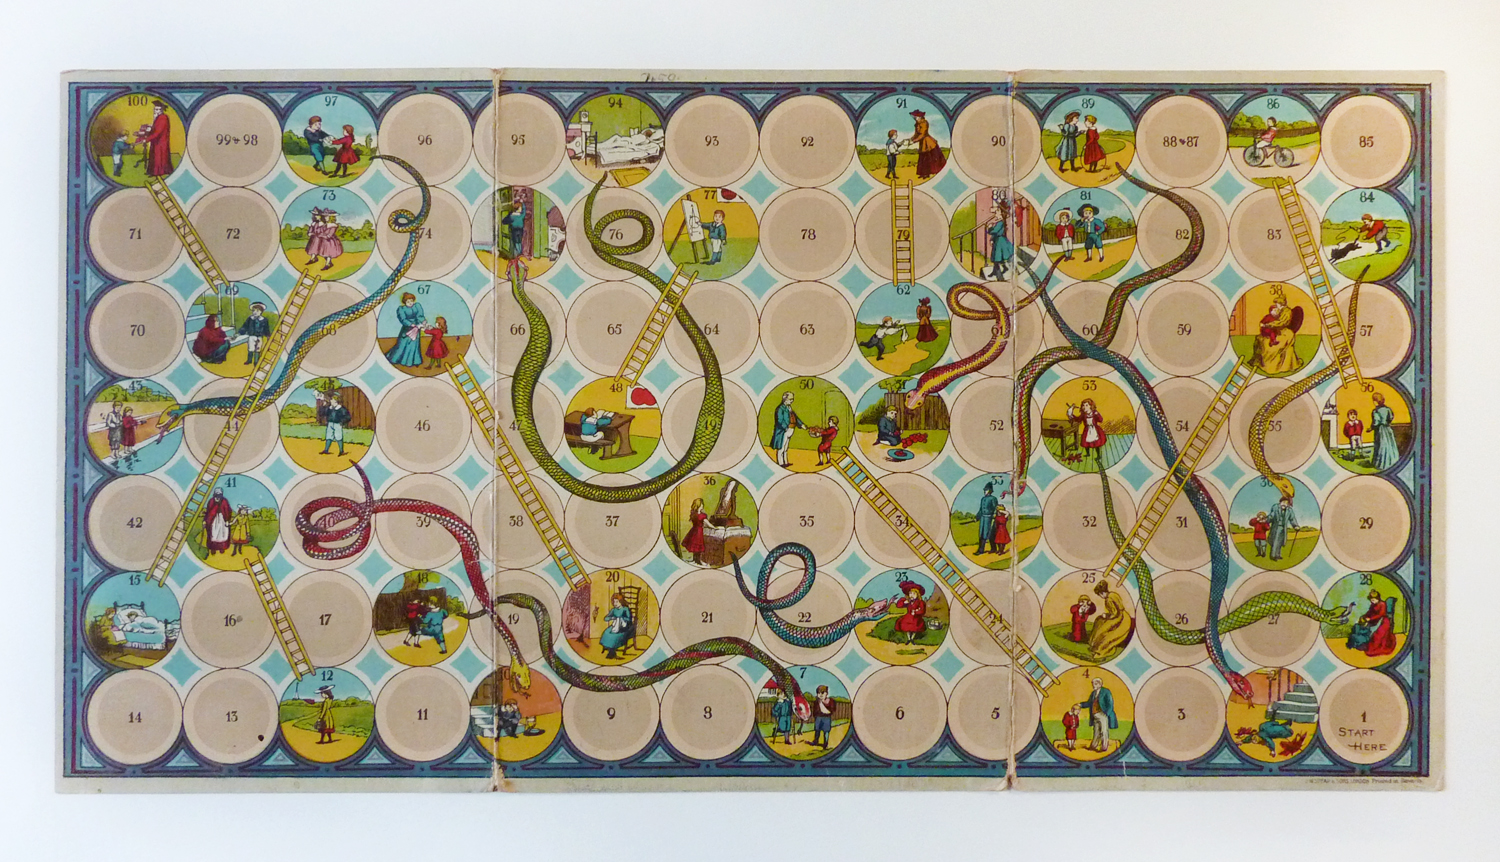 how to win in snakes and ladders